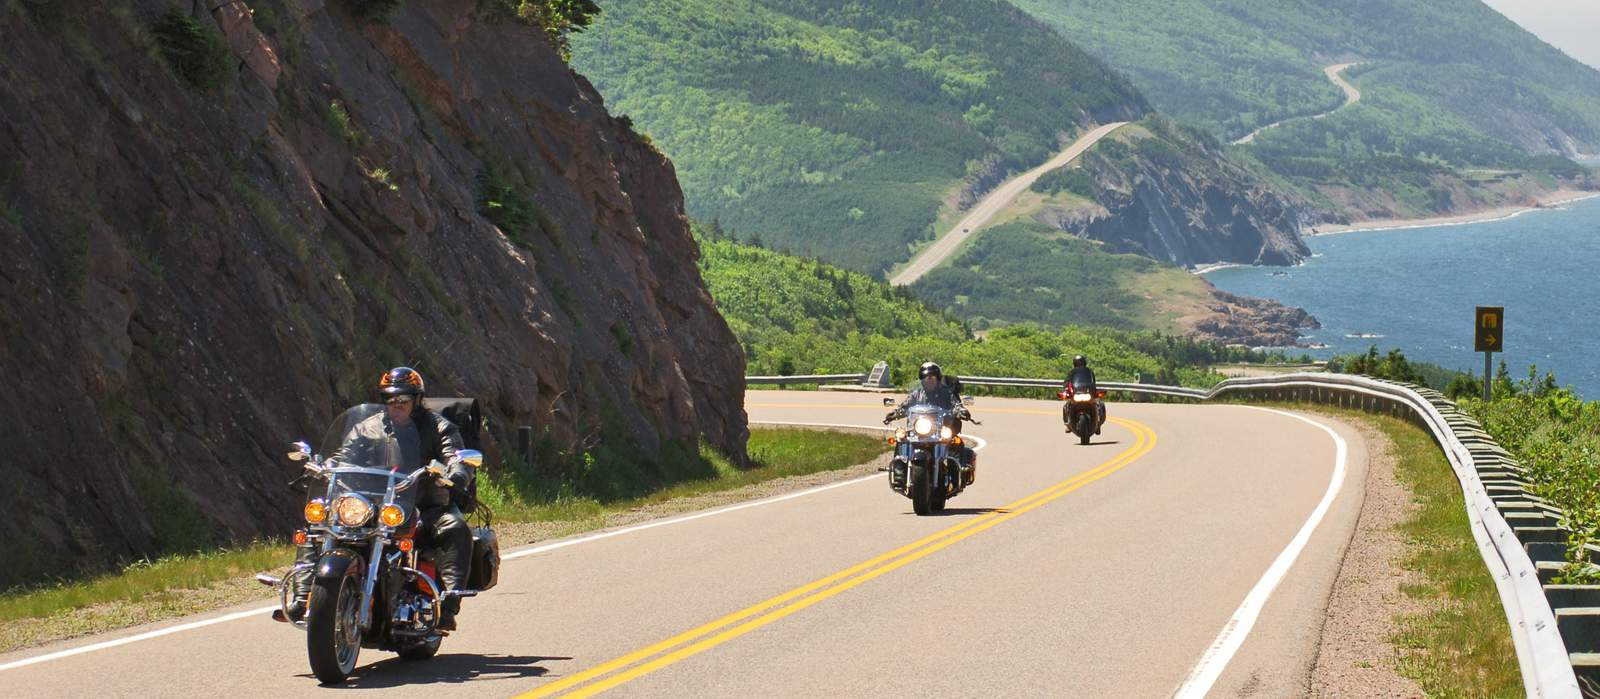 Scenics and panoramas from lookoffs on the west side of the Cabot Trail between Cheticamp and Red River